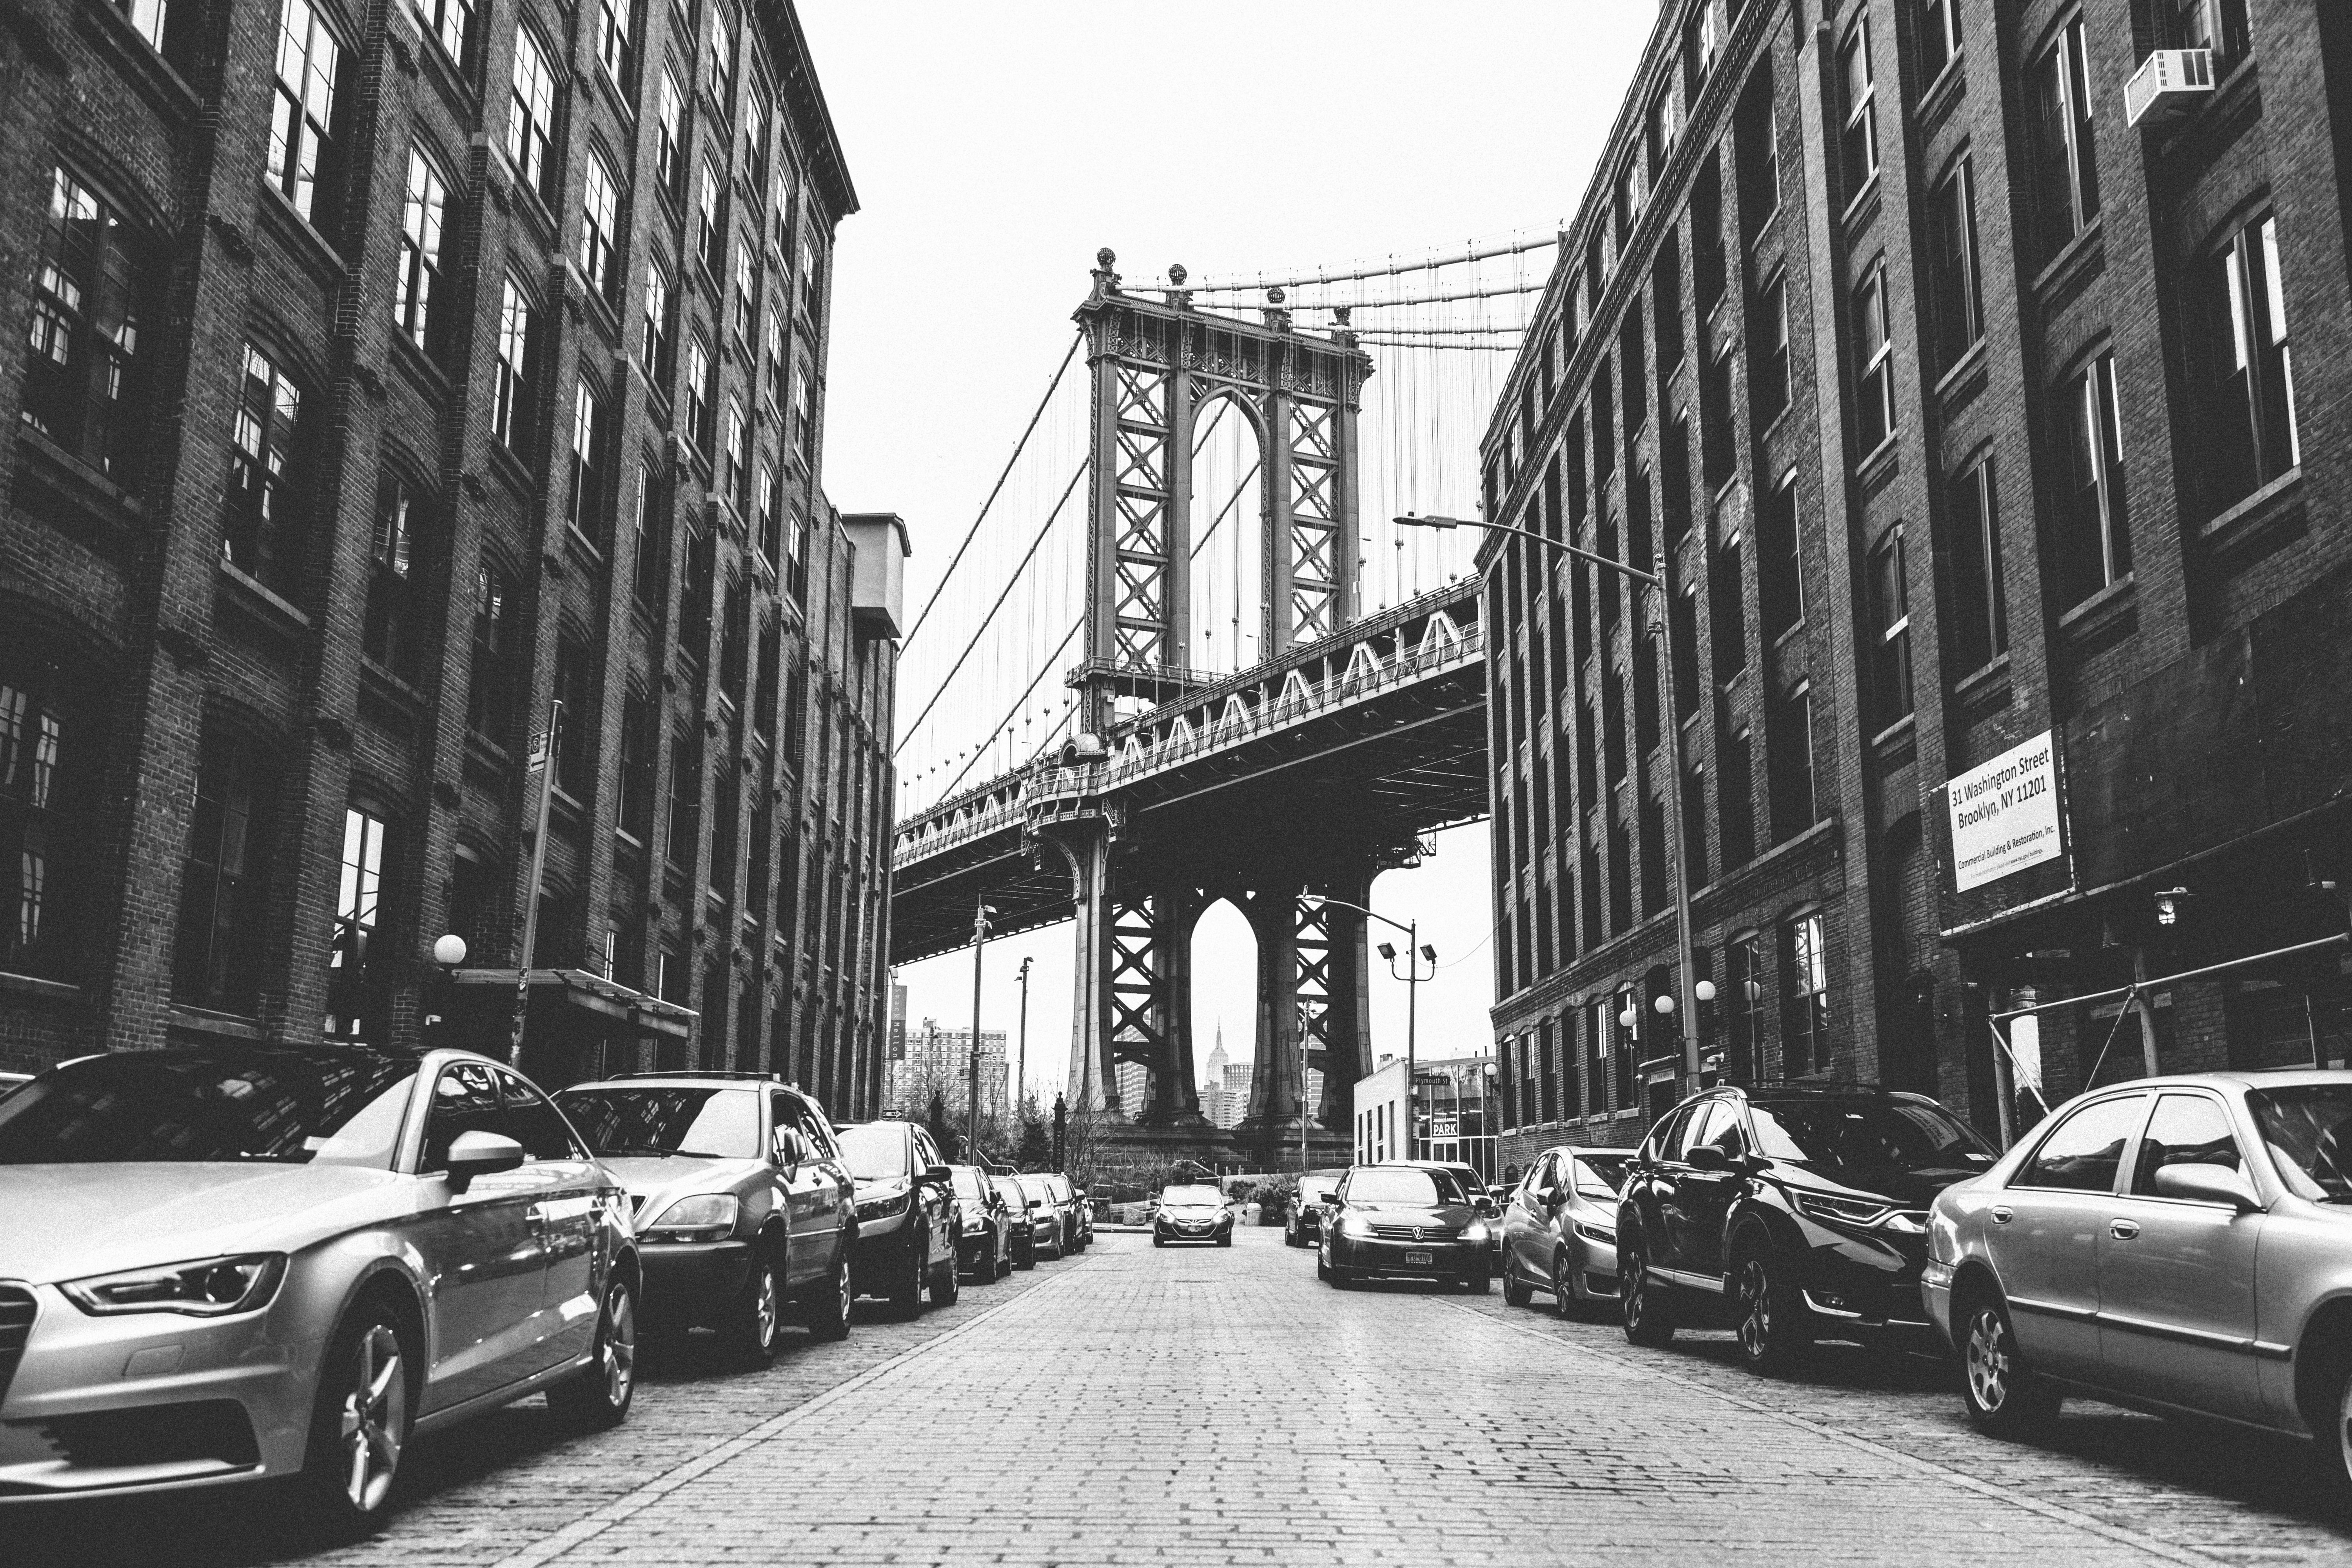 grayscale photography of vehicles in city